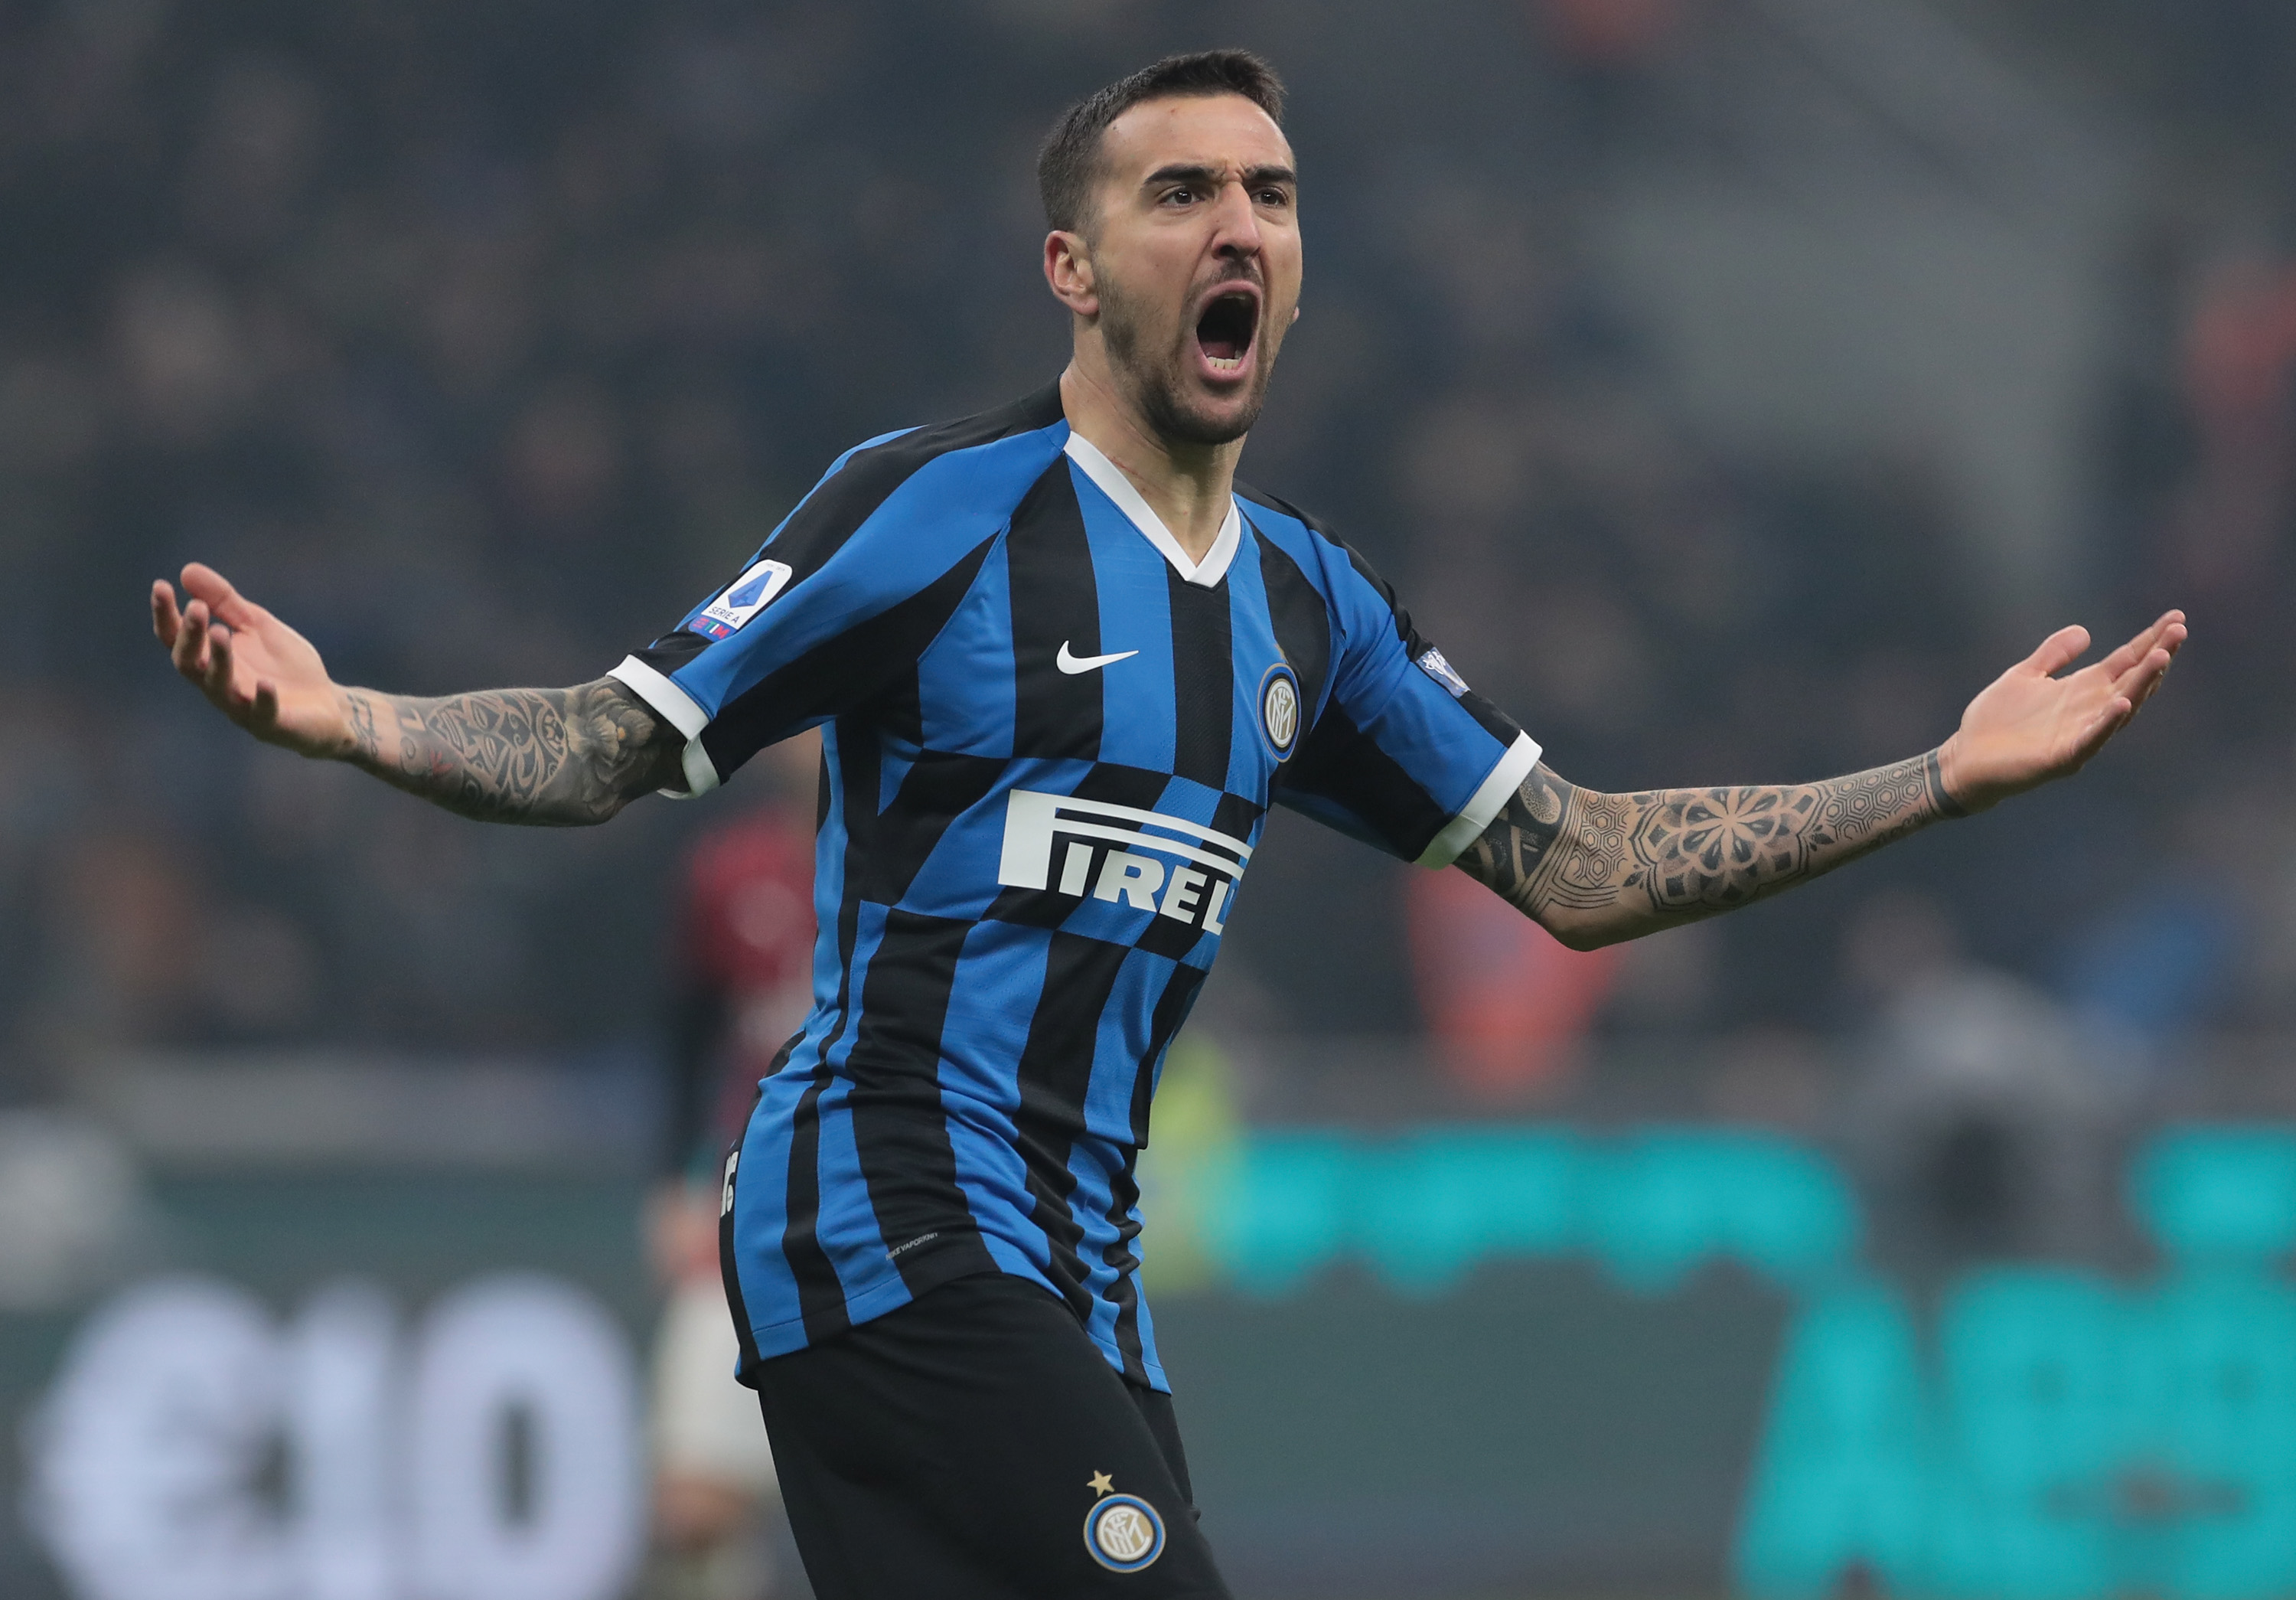 Tottenham Hotspur have been given another shot to sign Vecino who is celebrating in the photo